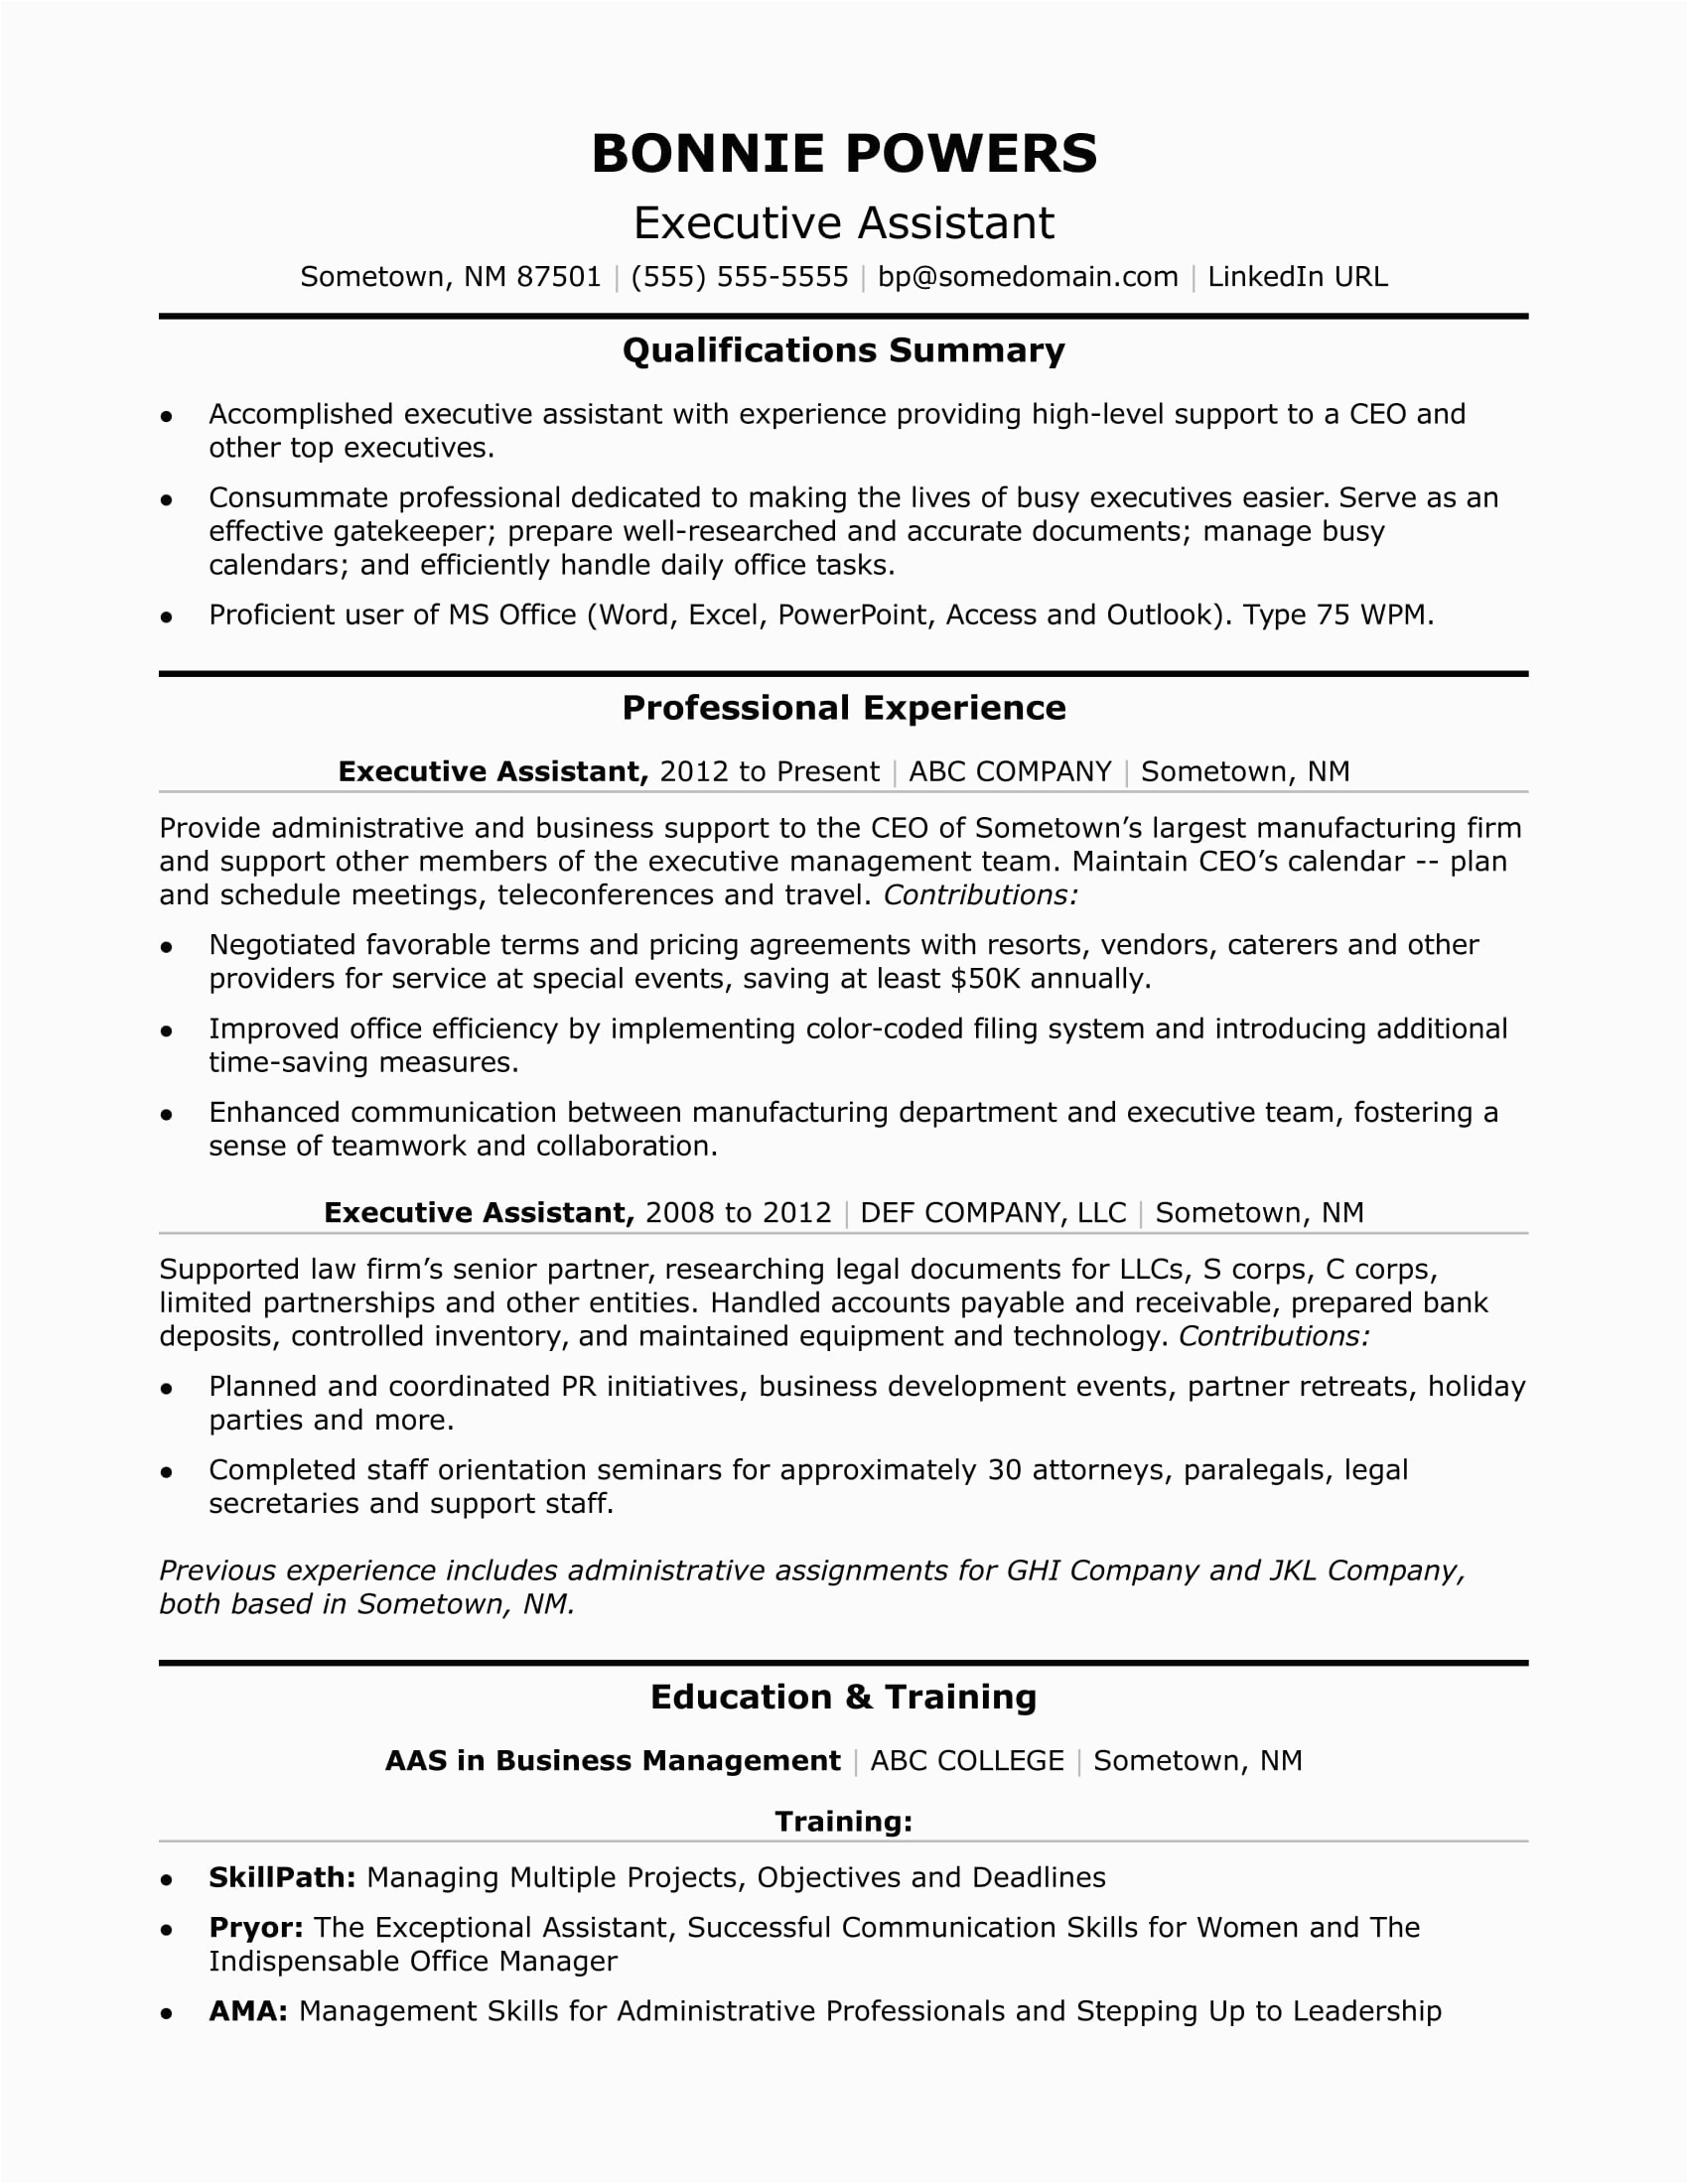 Sample Of Resume for Executive assistant 24 Best Sample Executive Resume Templates Wisestep